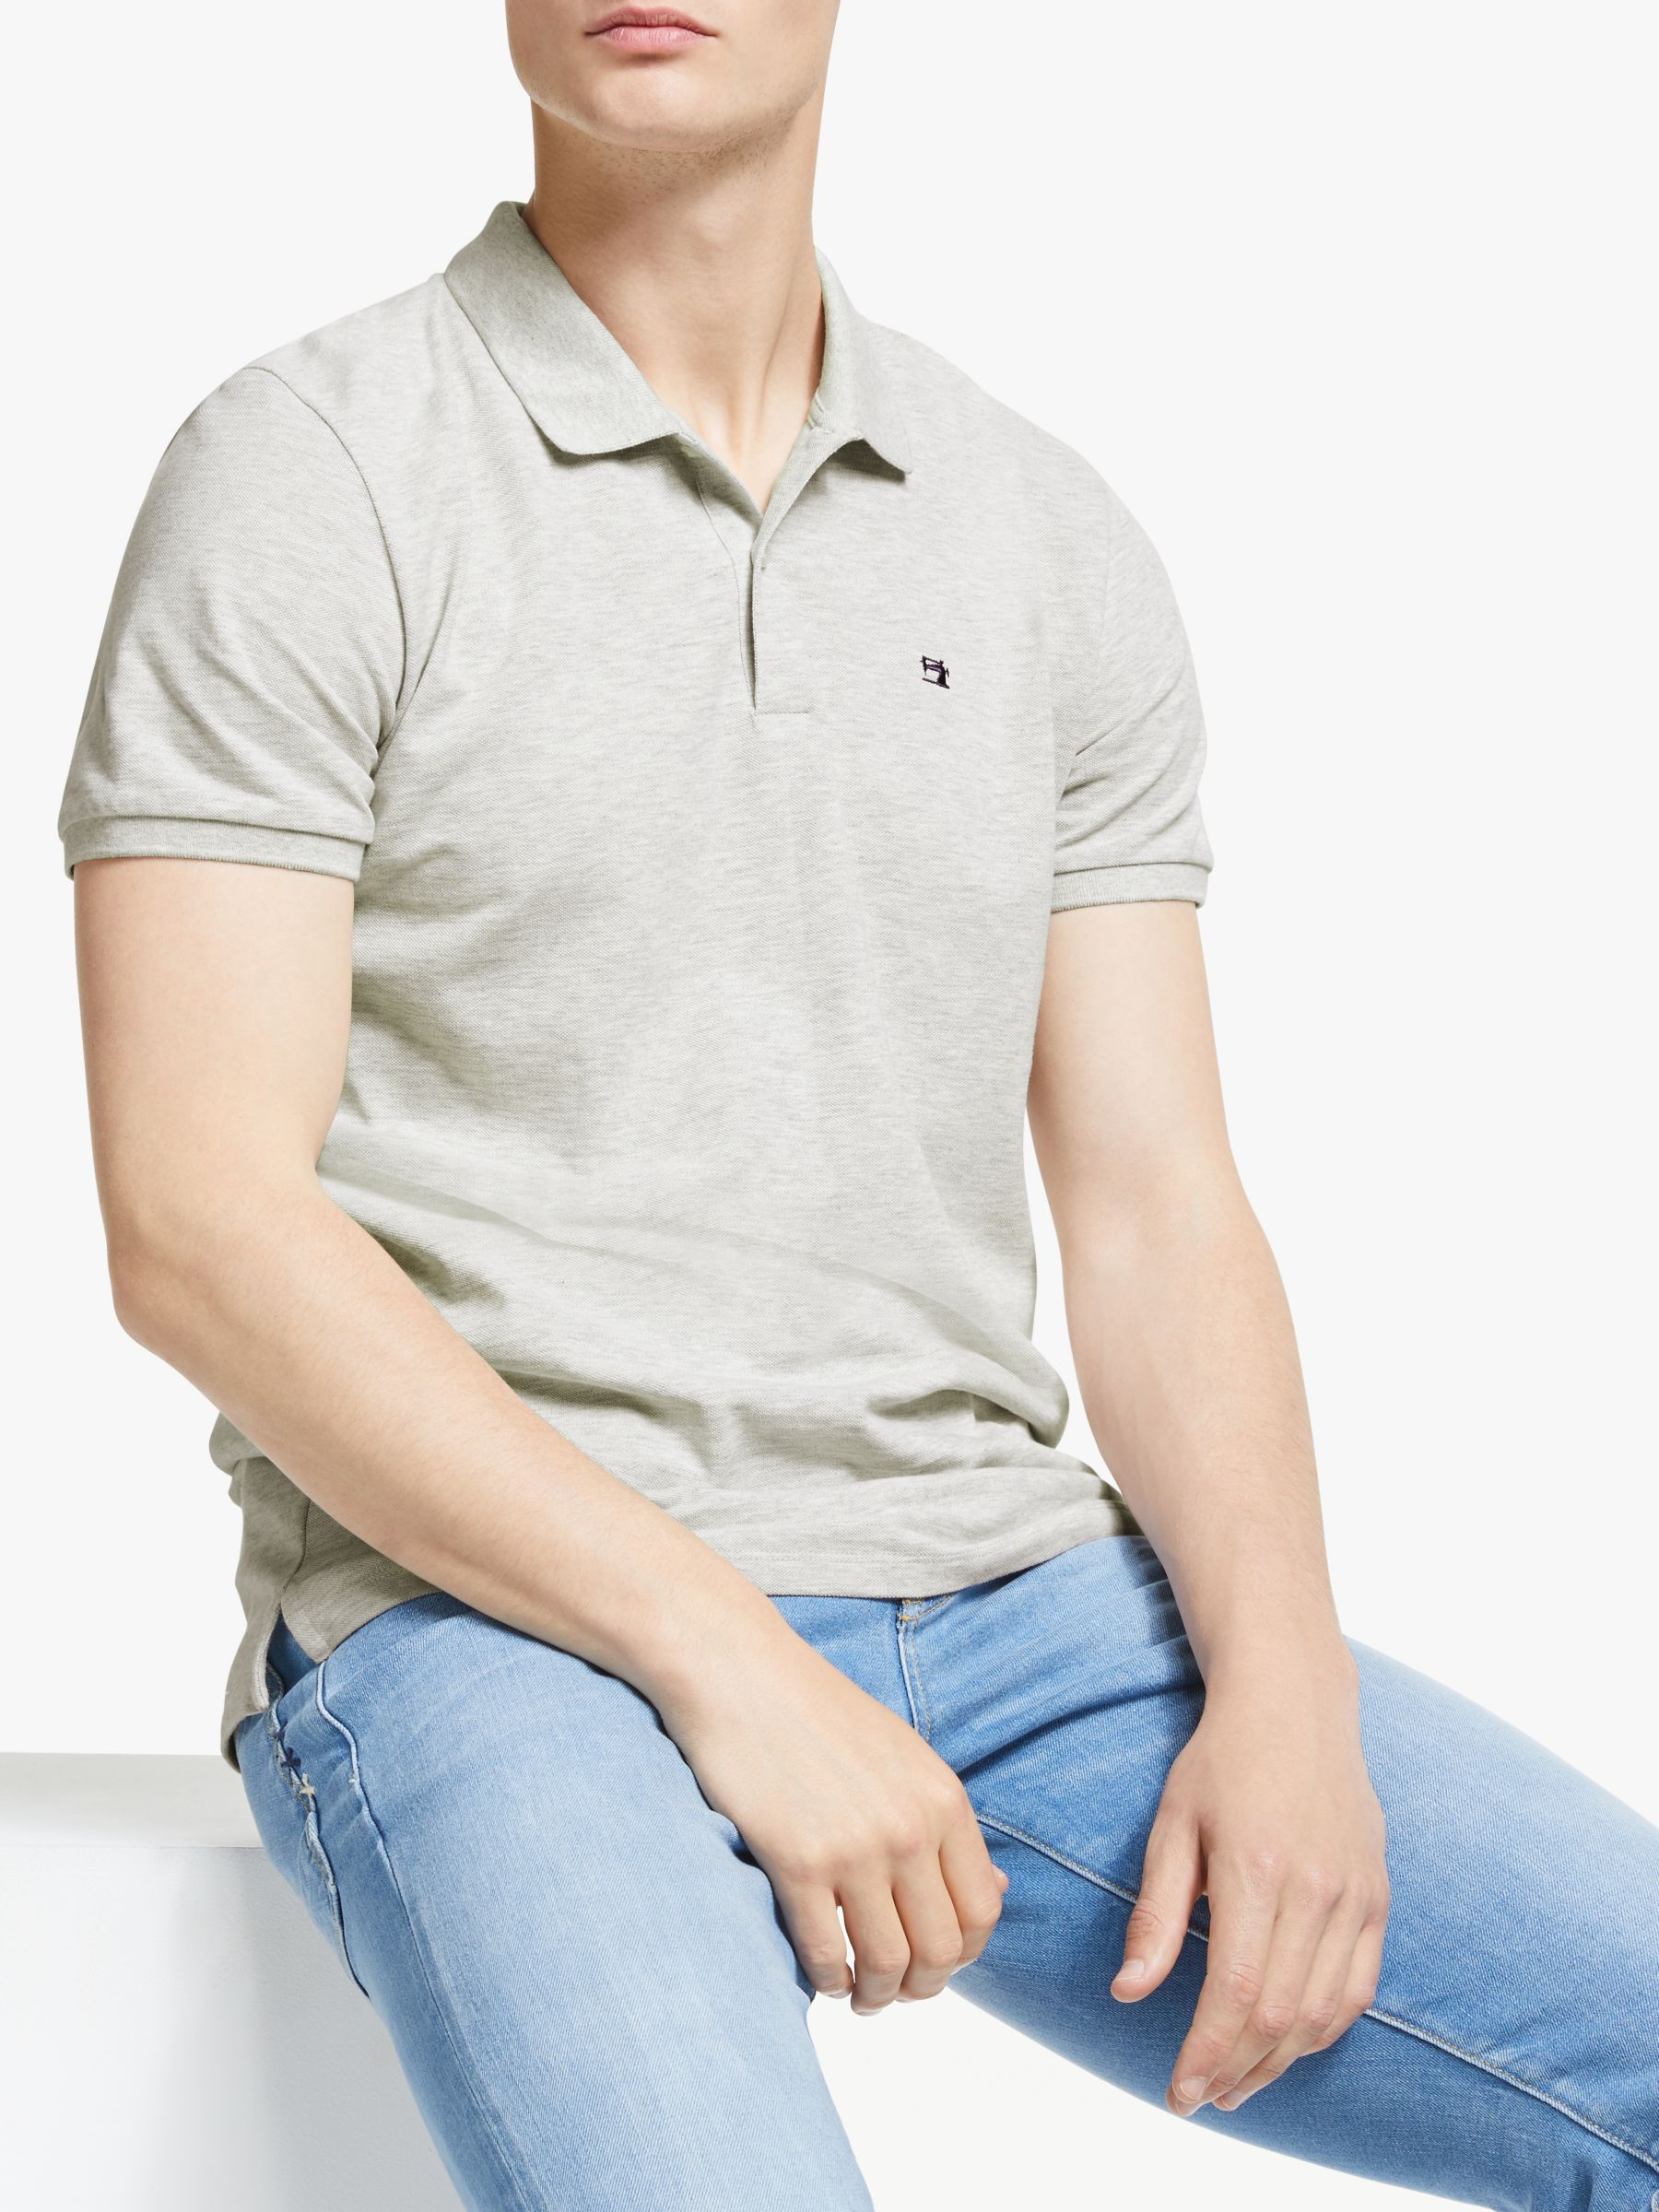 Scotch & Soda Scotch & Soda Garment Short Sleeve Pique Polo Shirt